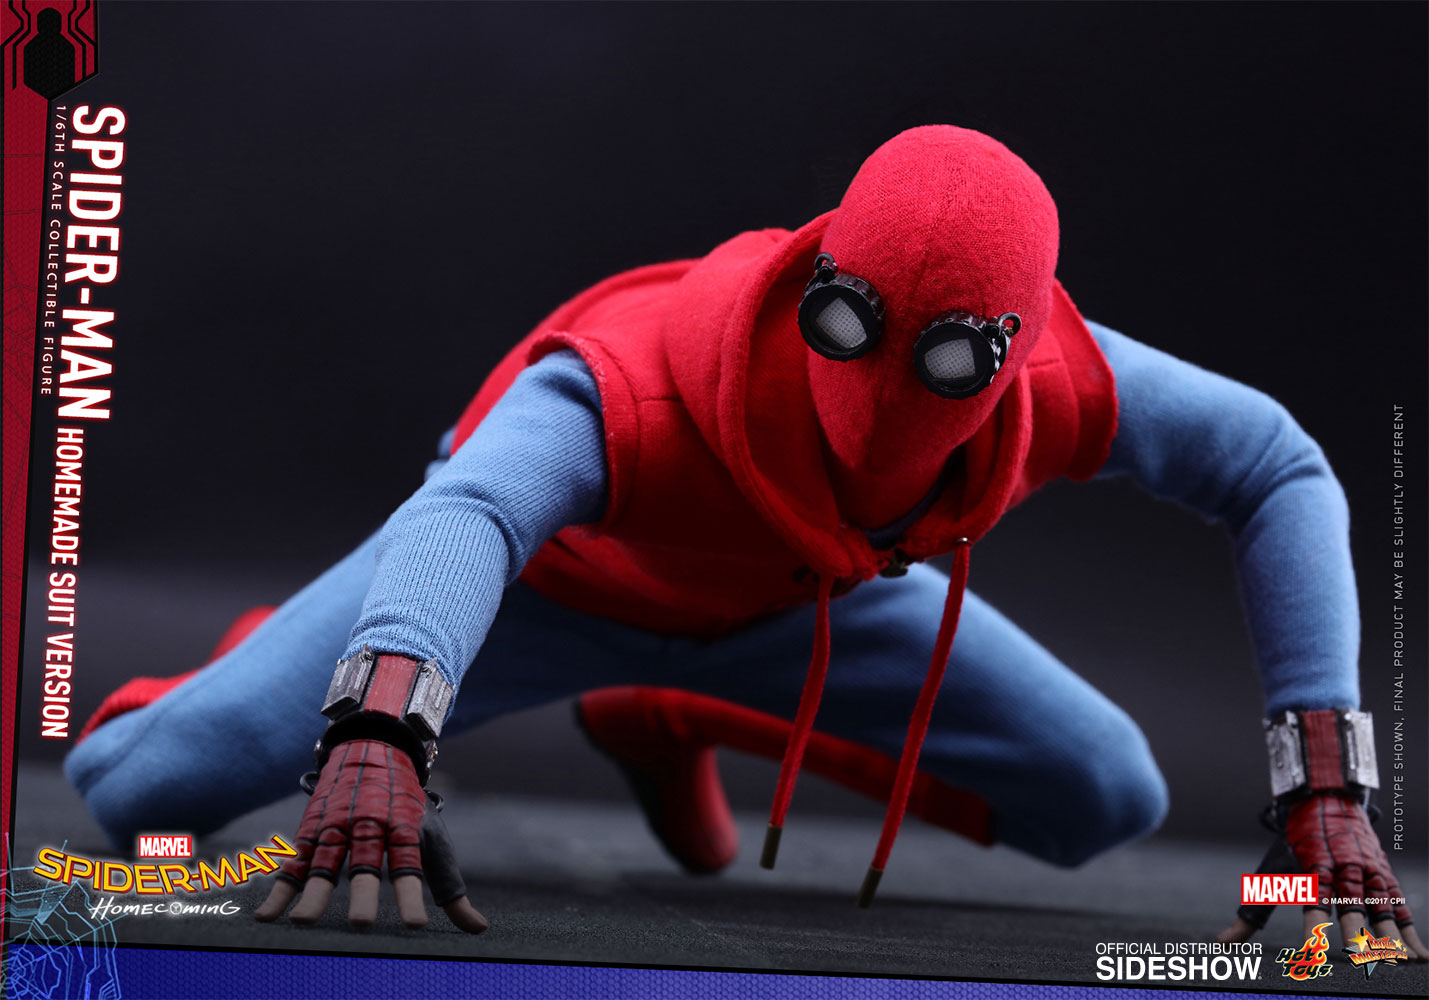 Marvel Spider-Man Homemade Suit Version Sixth Scale Figure b ...